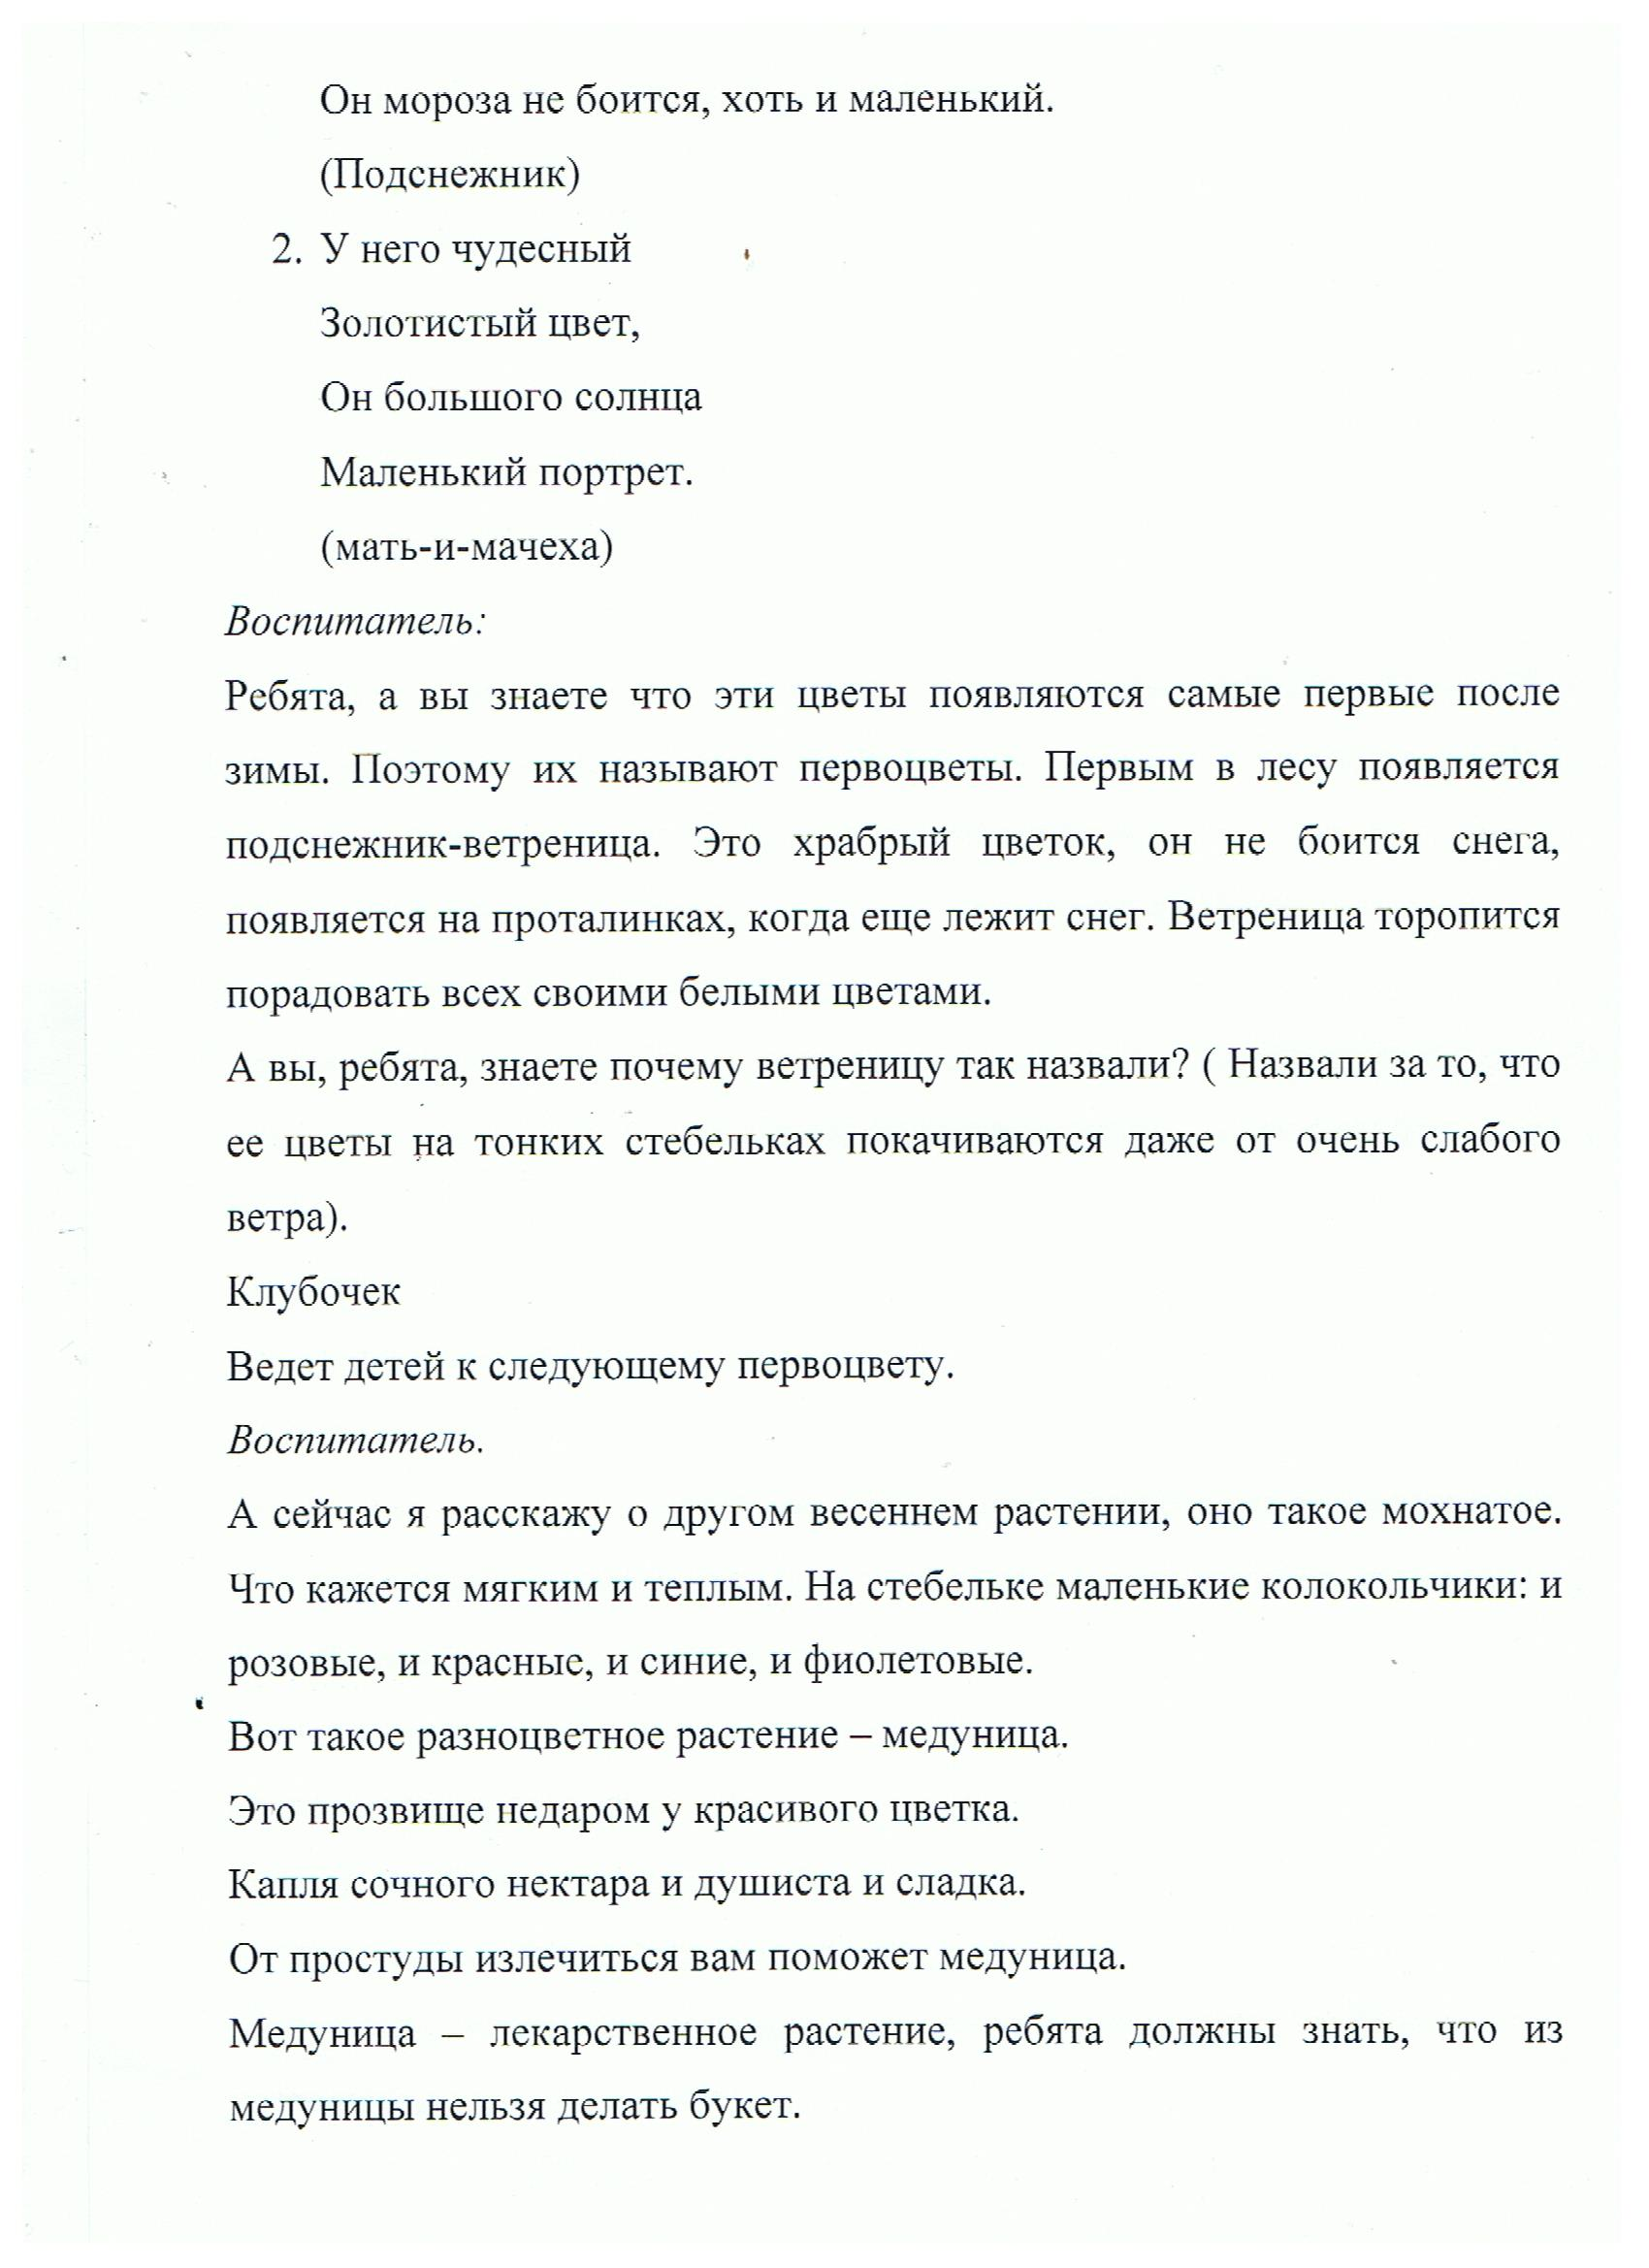 C:\Users\user\Documents\Scanned Documents\бабаева 1\Рисунок (3).jpg